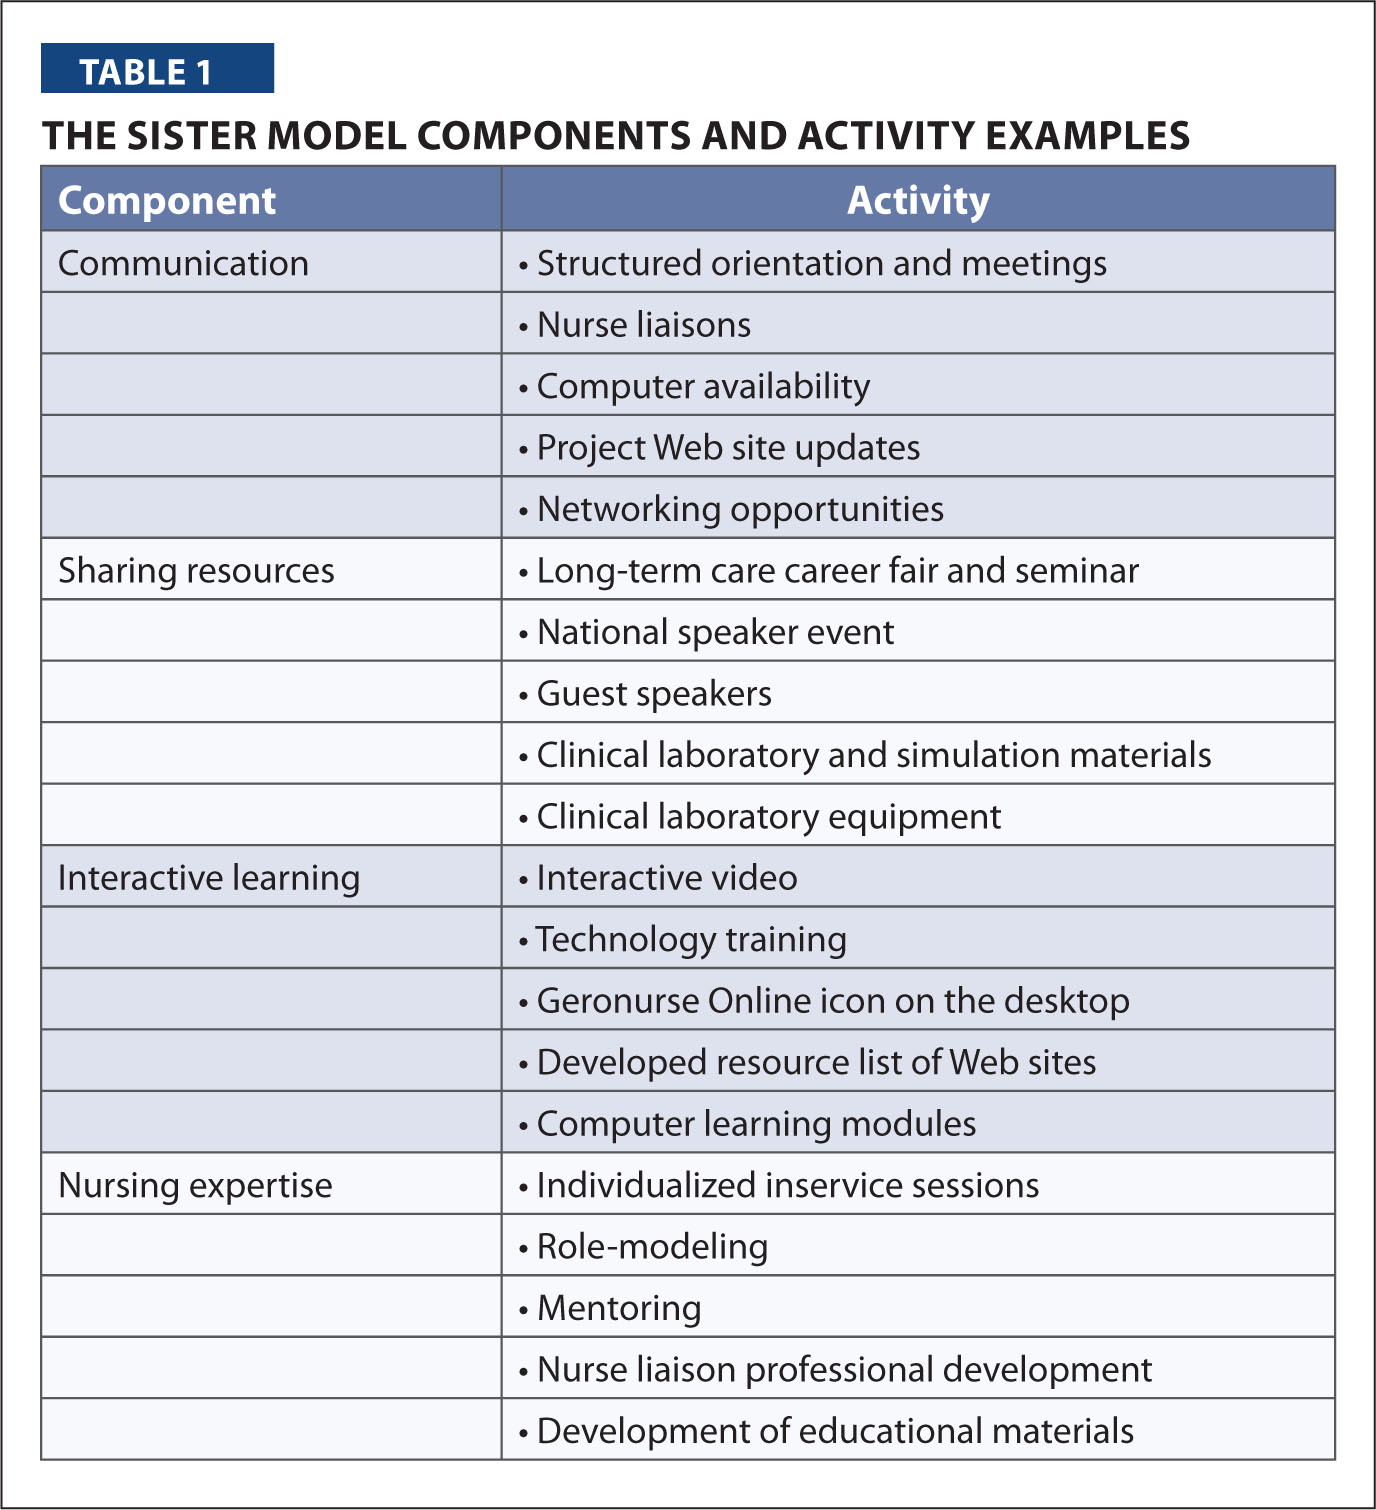 The Sister Model Components and Activity Examples